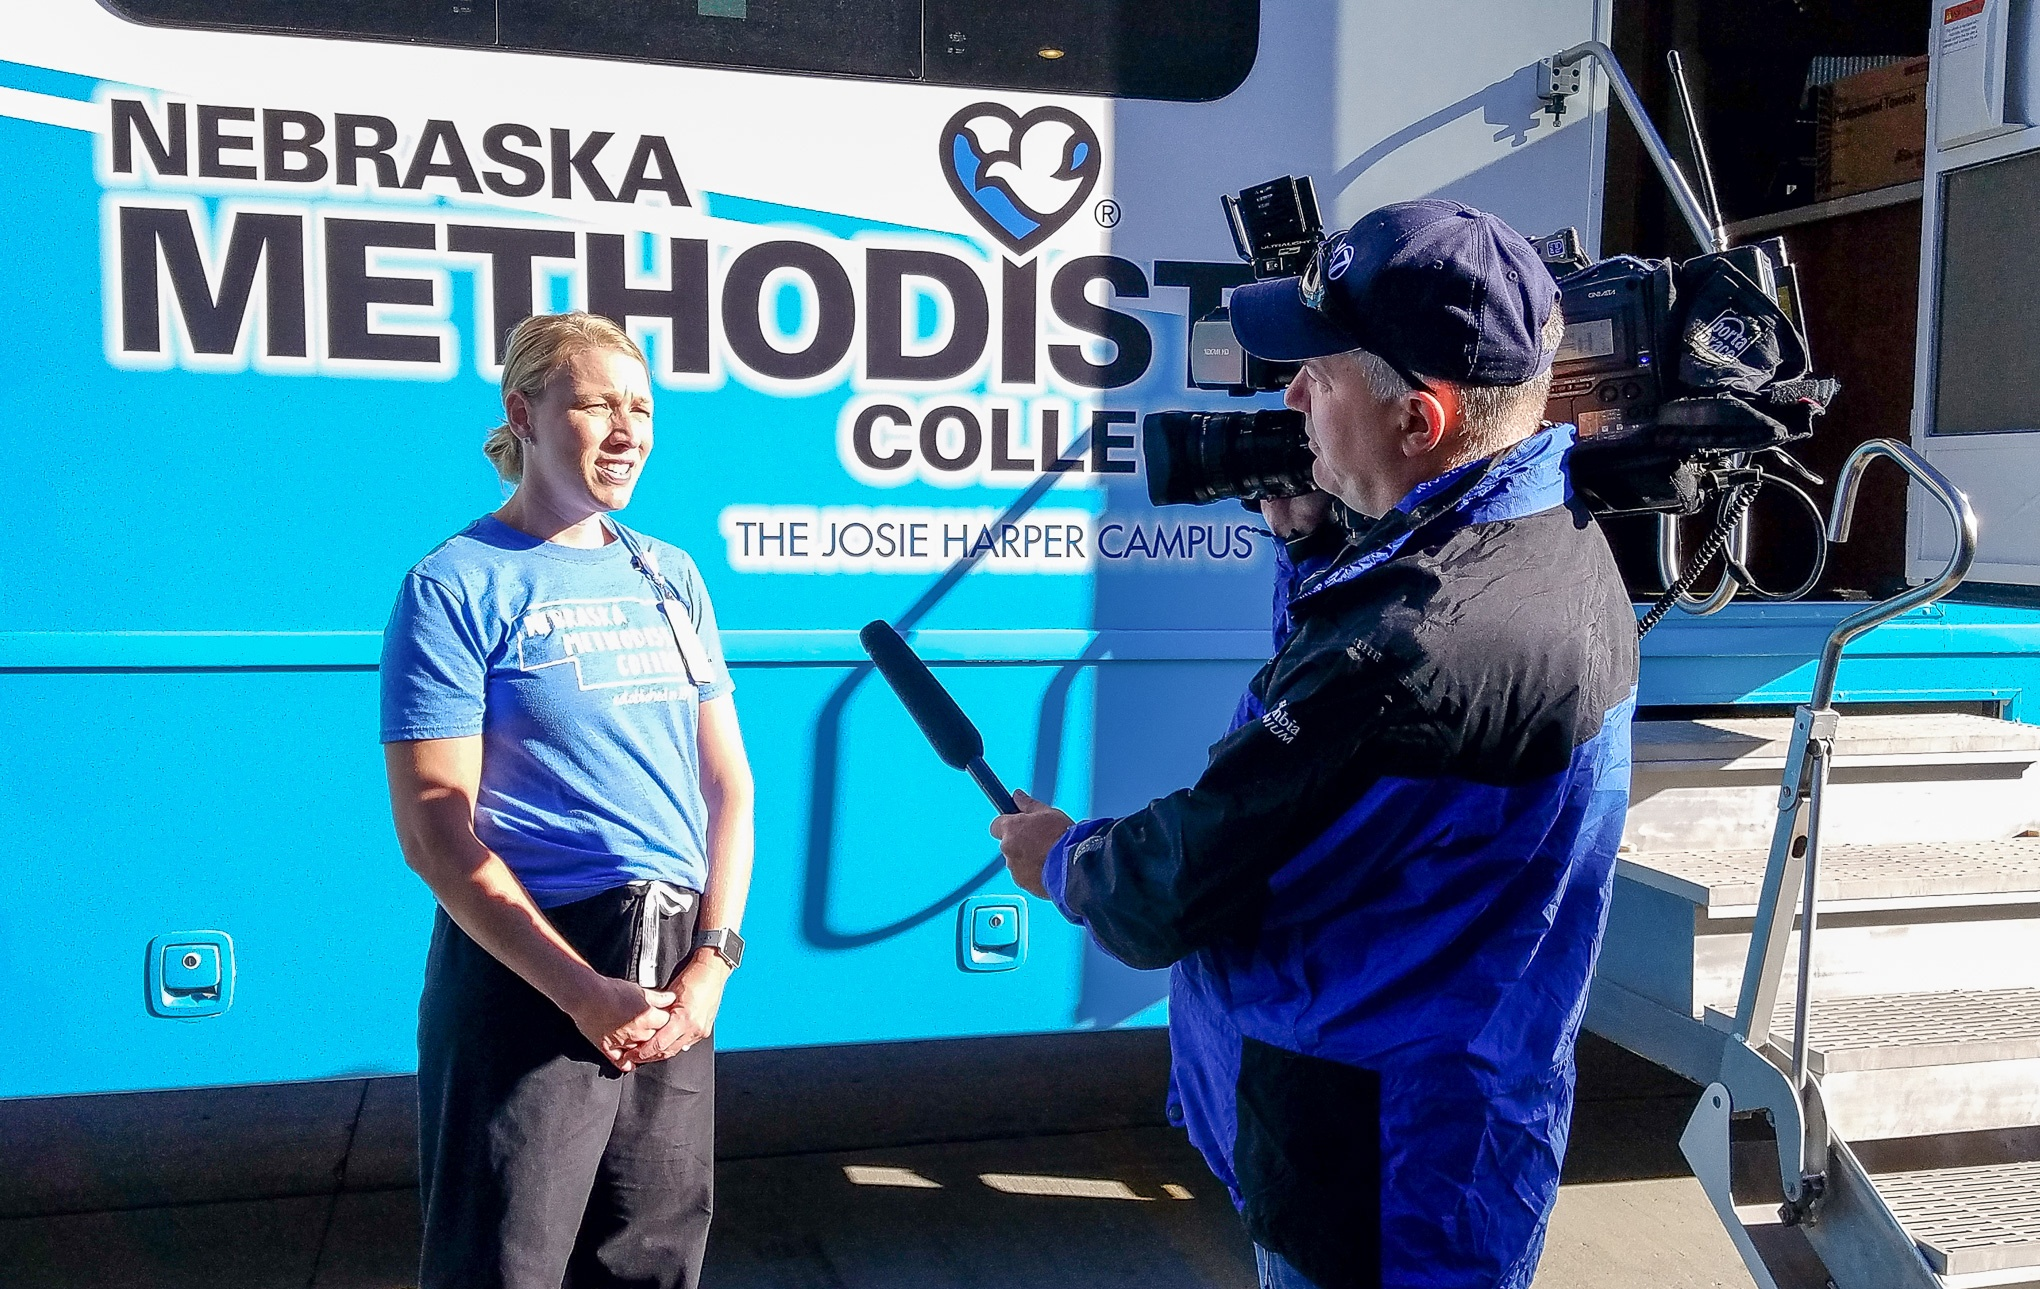 KETV reporter interviews Dr. Sisson on-camera in front of Mobile Diabetes Center.